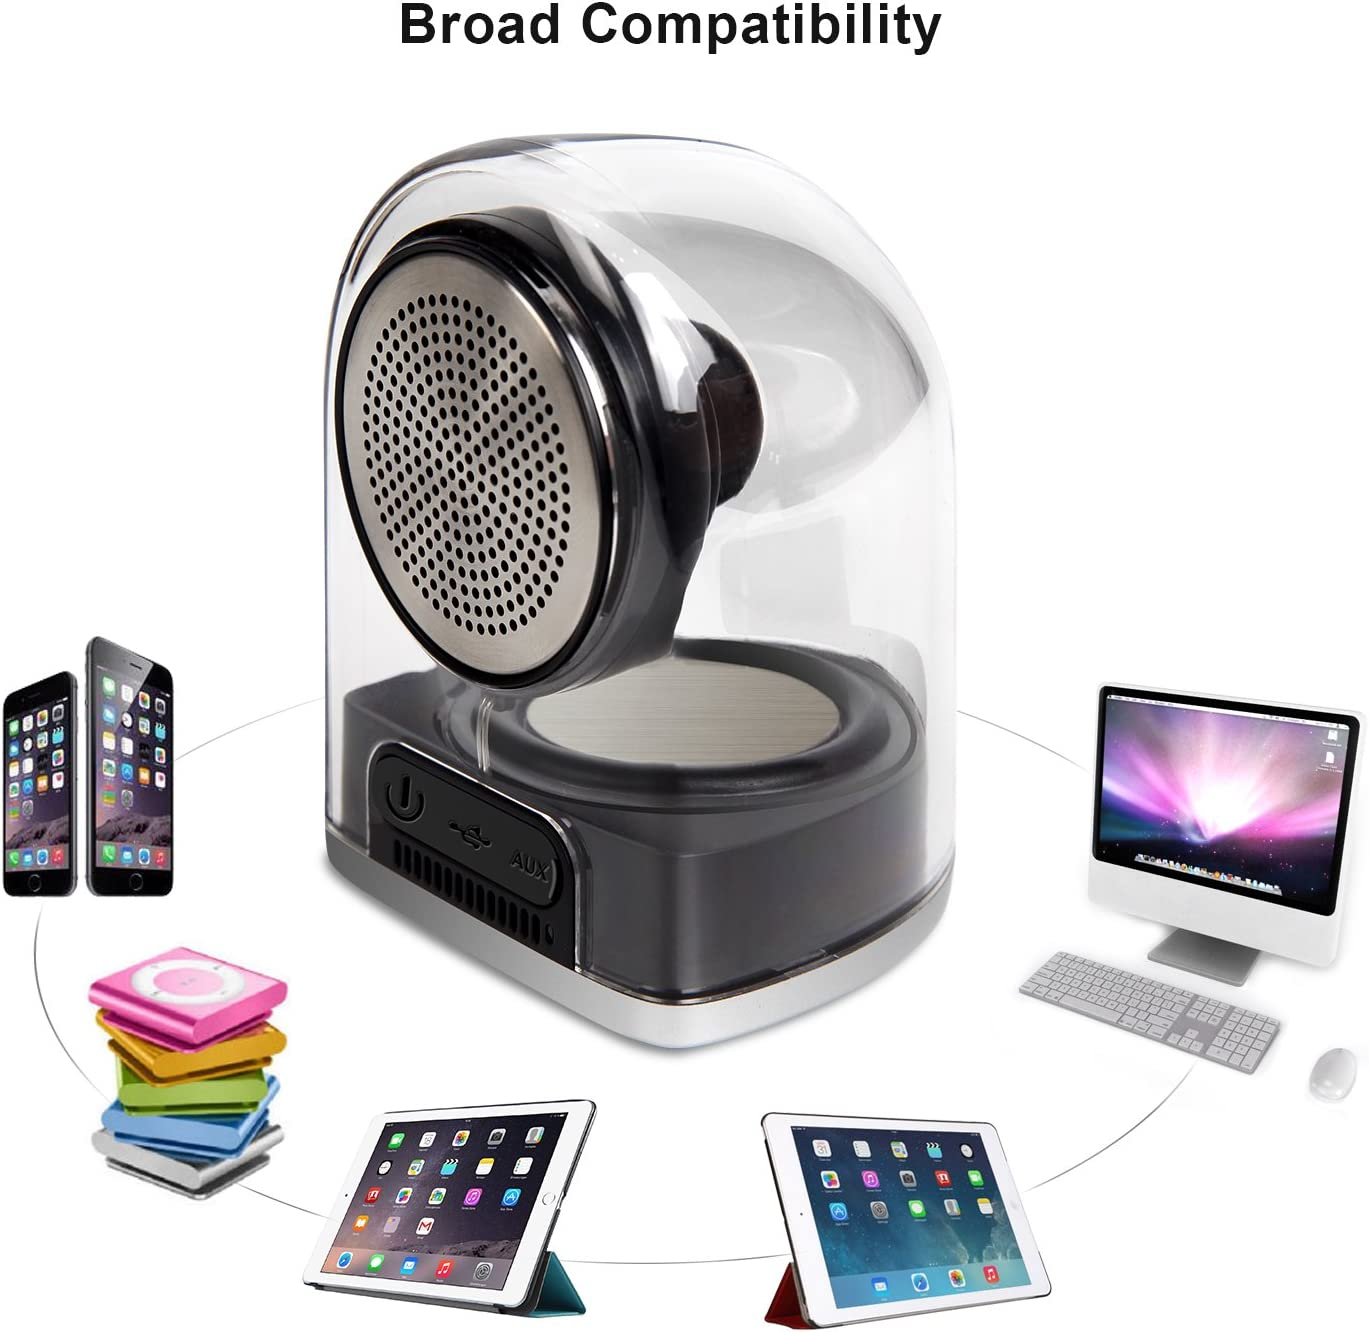 Smart Phone iPad Wireless Speaker with Built-in Mic for iPhone LETTON D12 Bluetooth Speaker Laptops and More